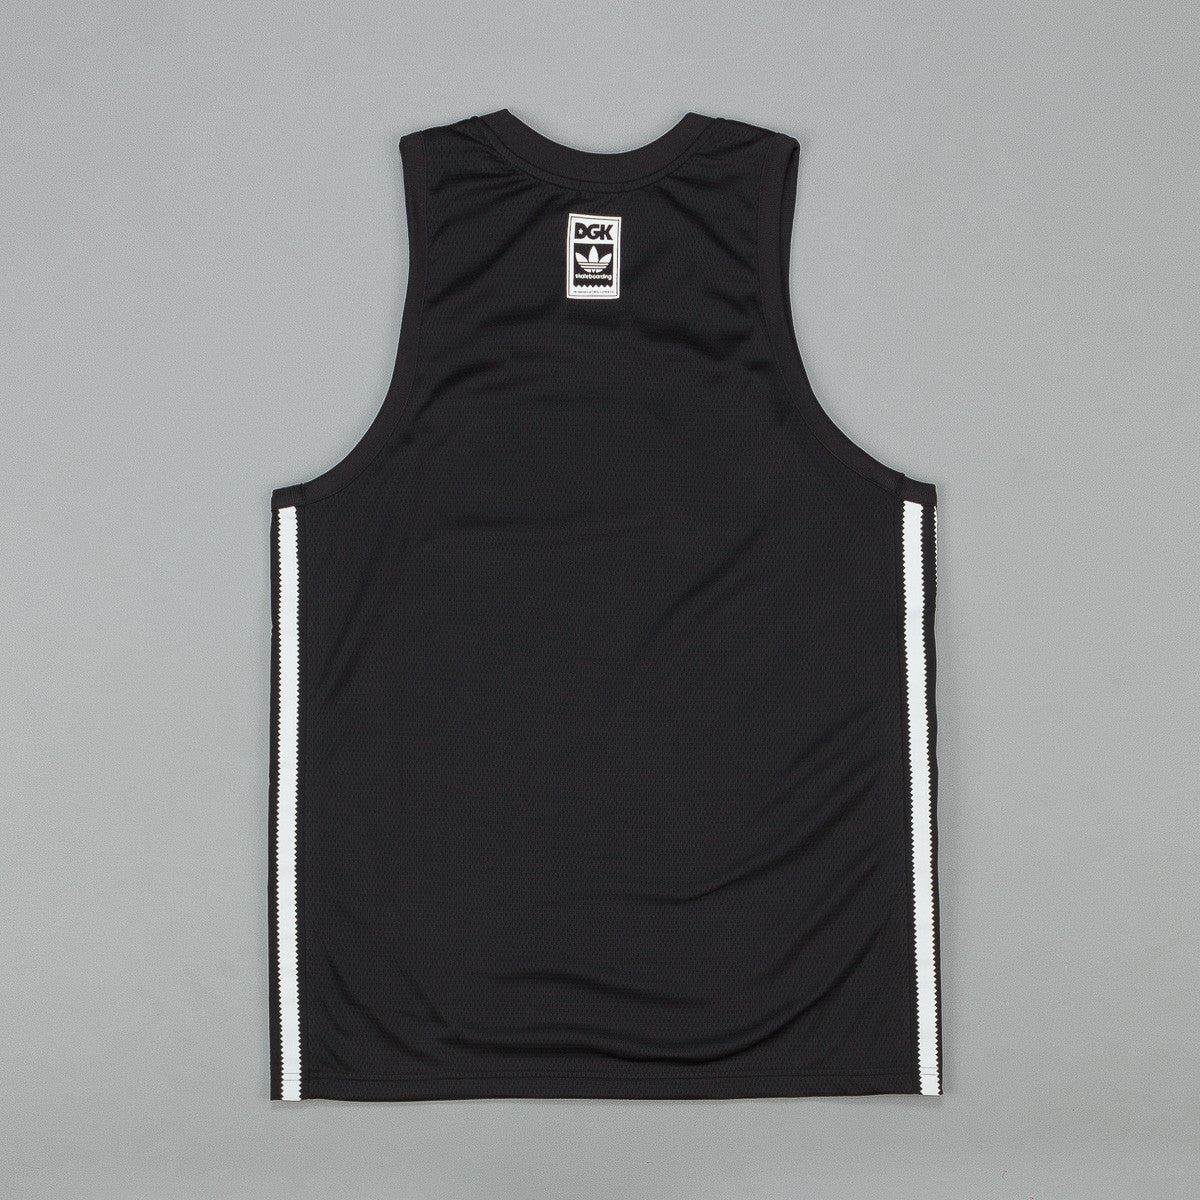 Adidas DGK Basketball Jersey - Black